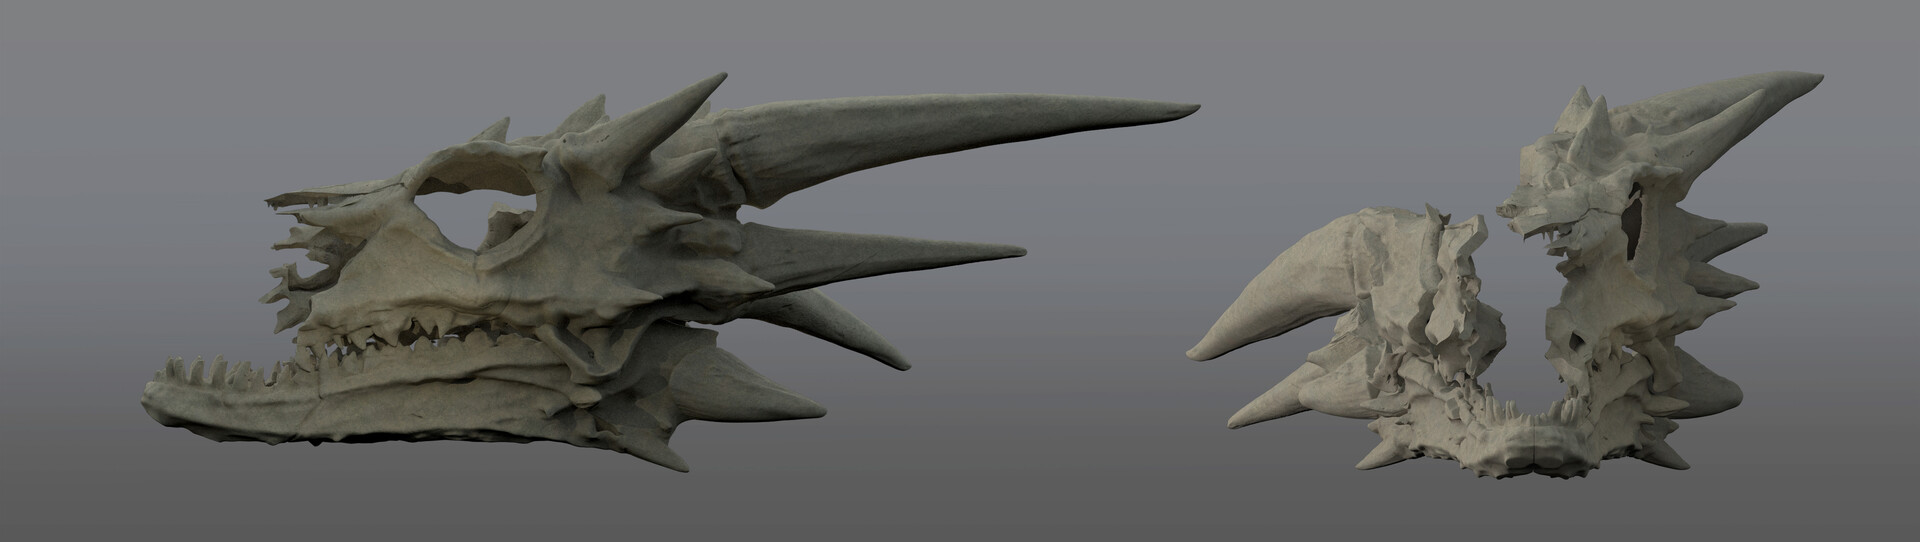 destroyed Balerion skull, front and side